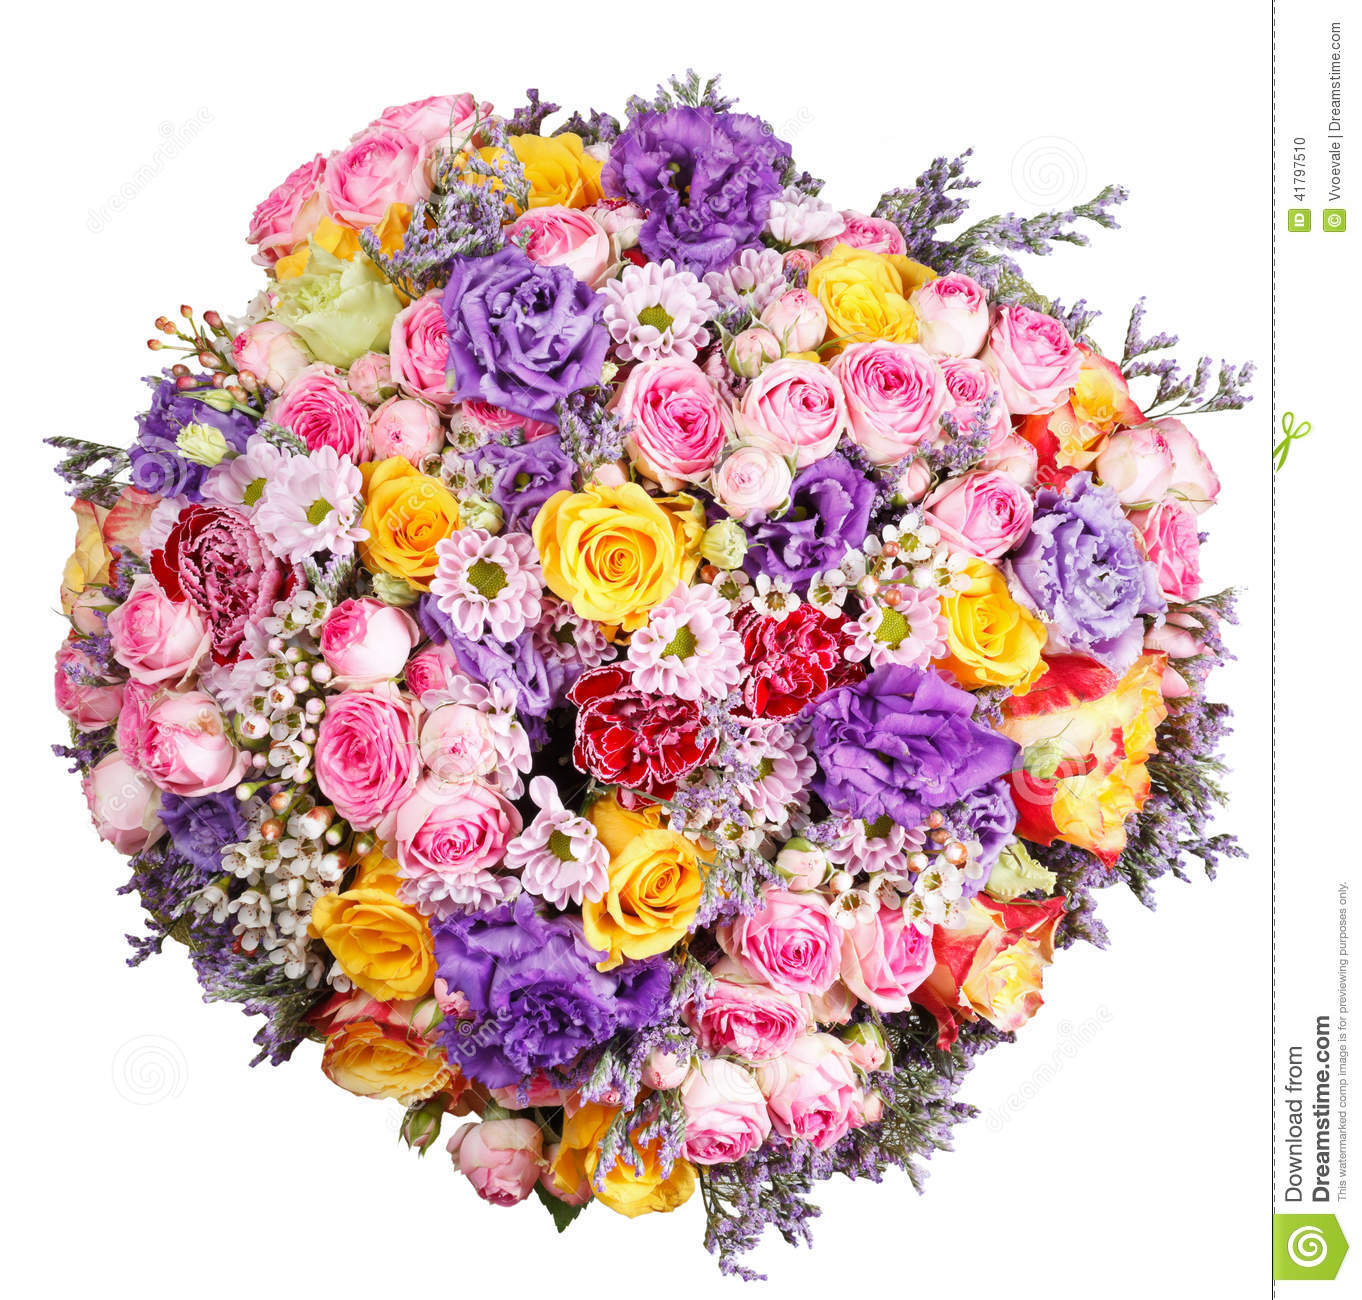 Big bunch of flowers image png Picture of big bunch of flowers - ClipartFest png